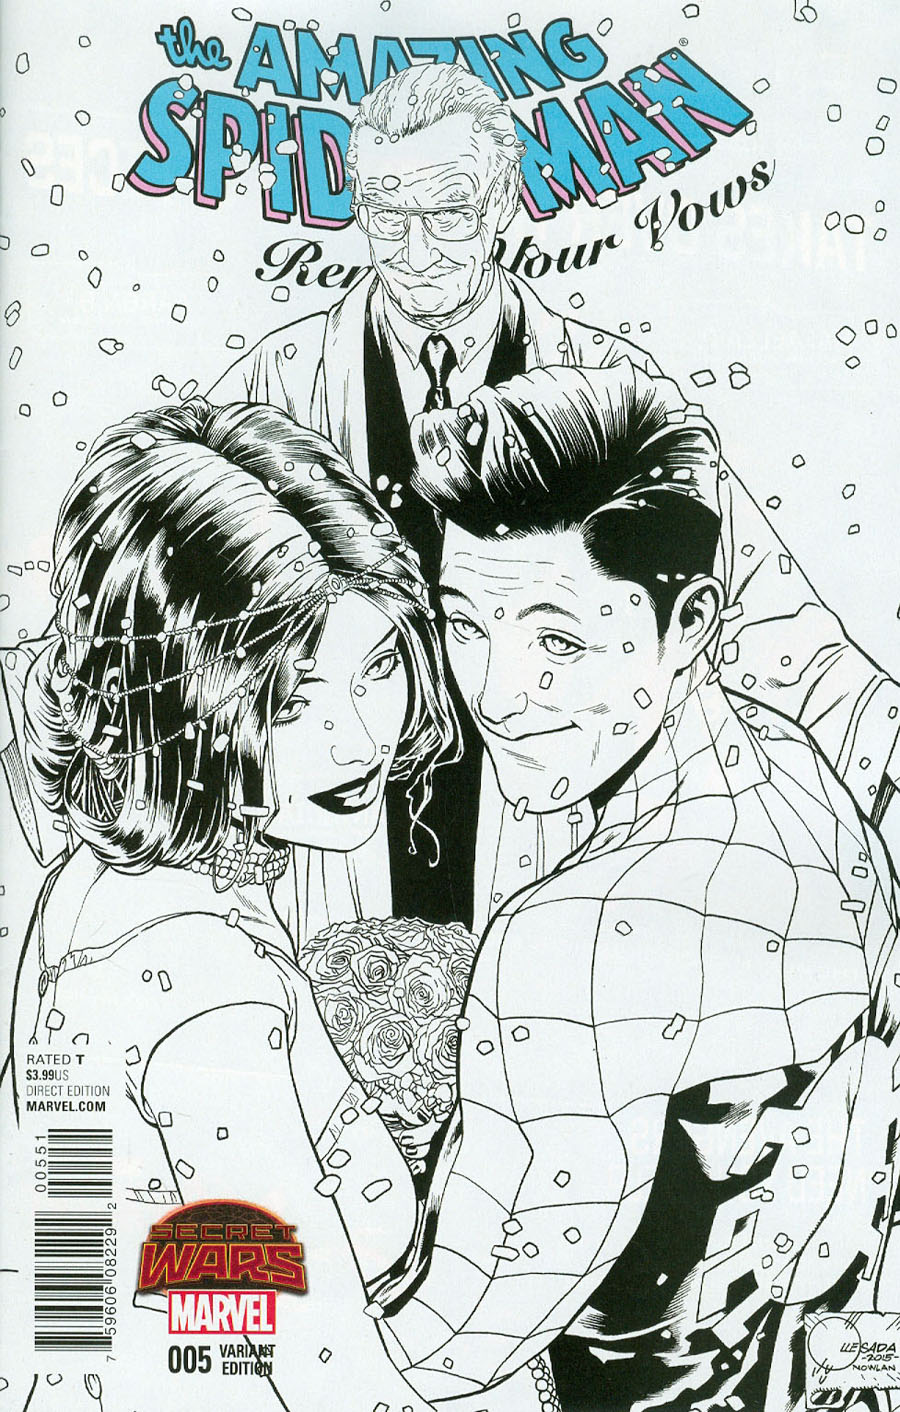 Amazing Spider-Man Renew Your Vows #5 Cover F Incentive Joe Quesada Sketch Variant B Cover (Secret Wars Warzones Tie-In)